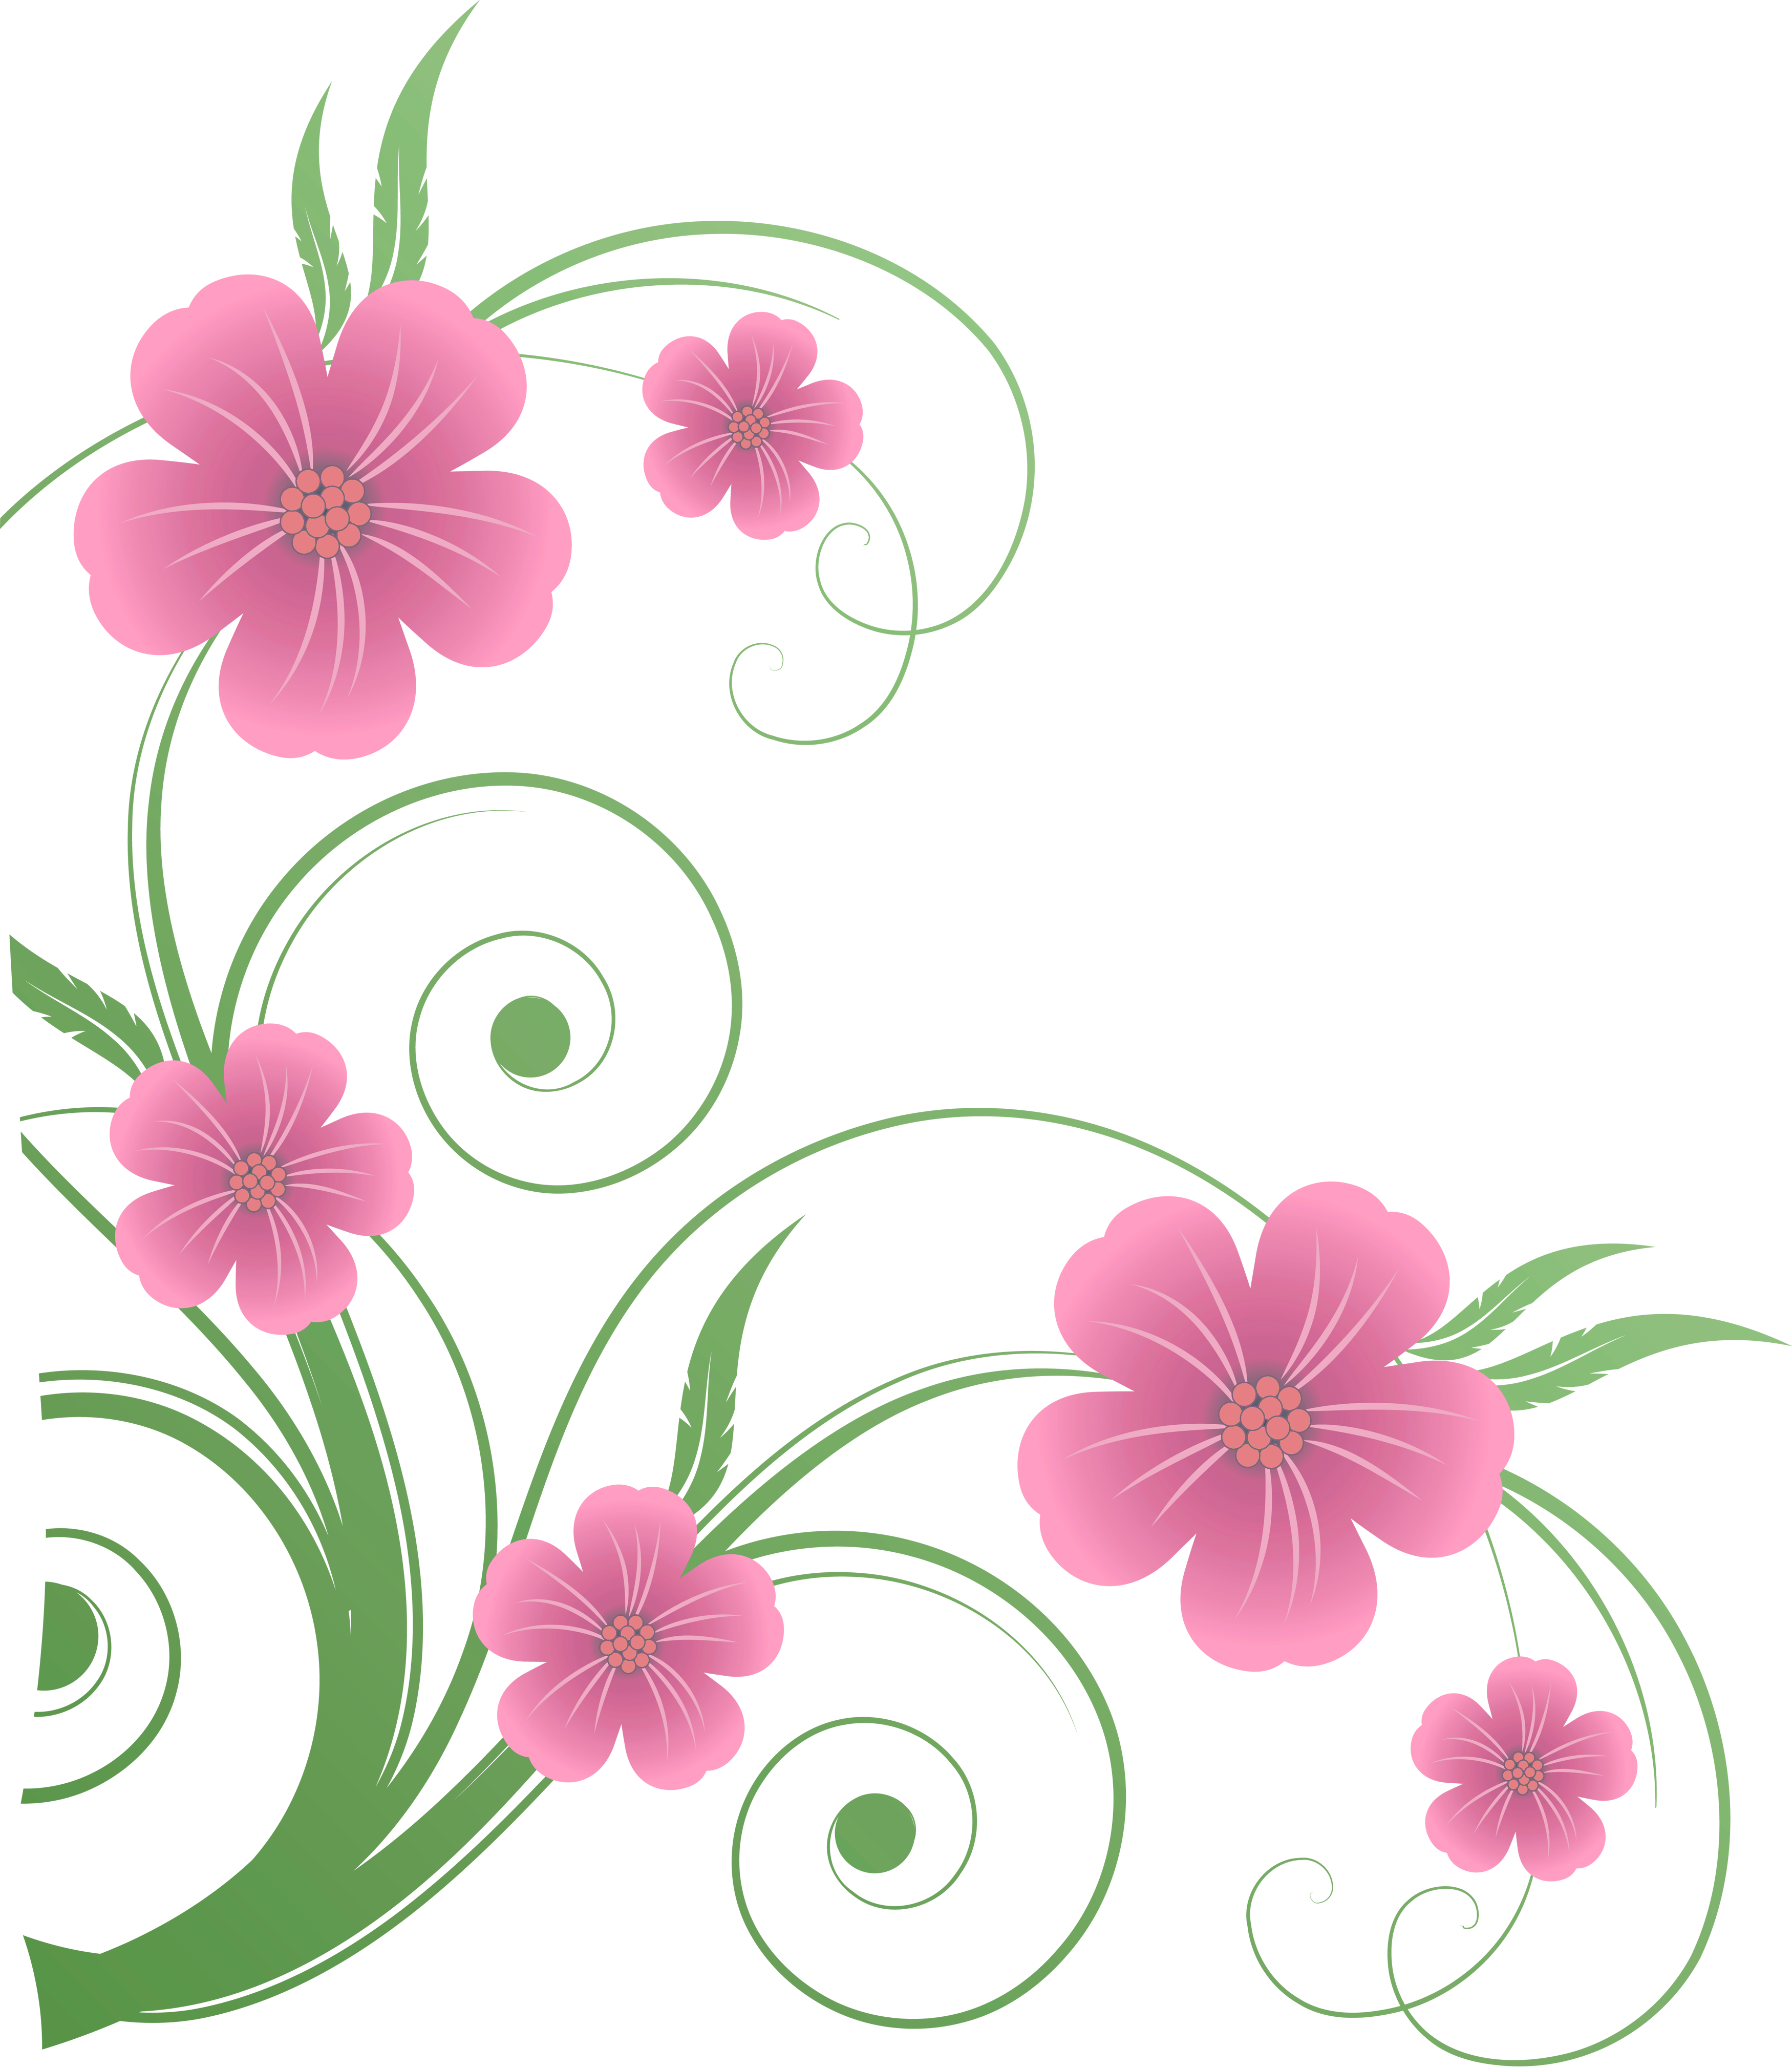 Floral designs of the number zero transluscent clipart graphic royalty free stock Free collection of Flowers clipart png. Download transparent clip ... graphic royalty free stock